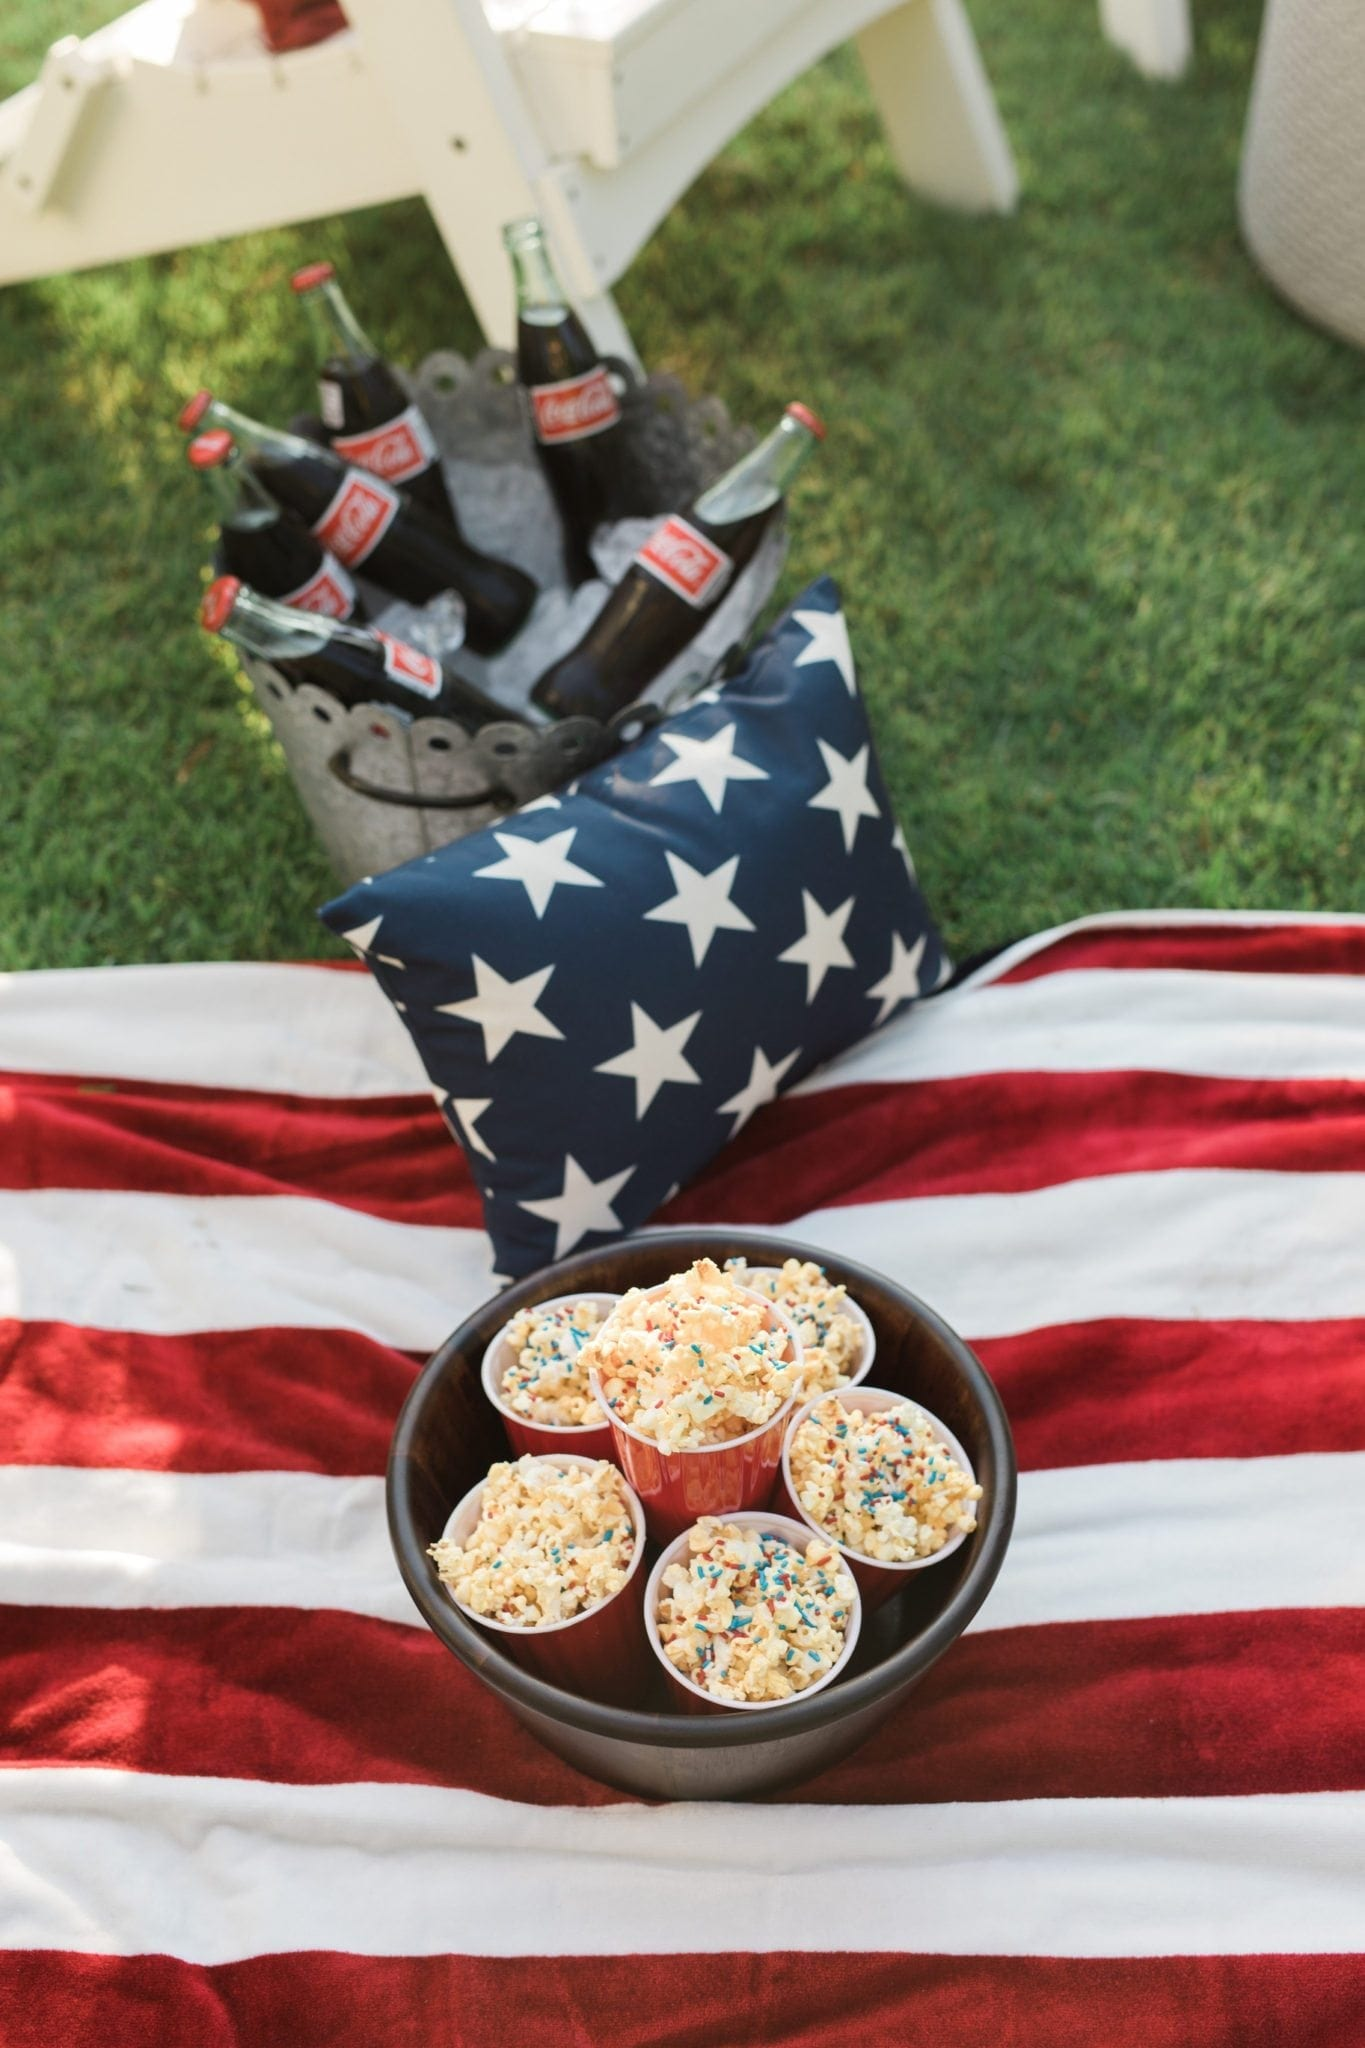 Fourth of July tablescape and 4th of july party ideas with red white and blue party decor.